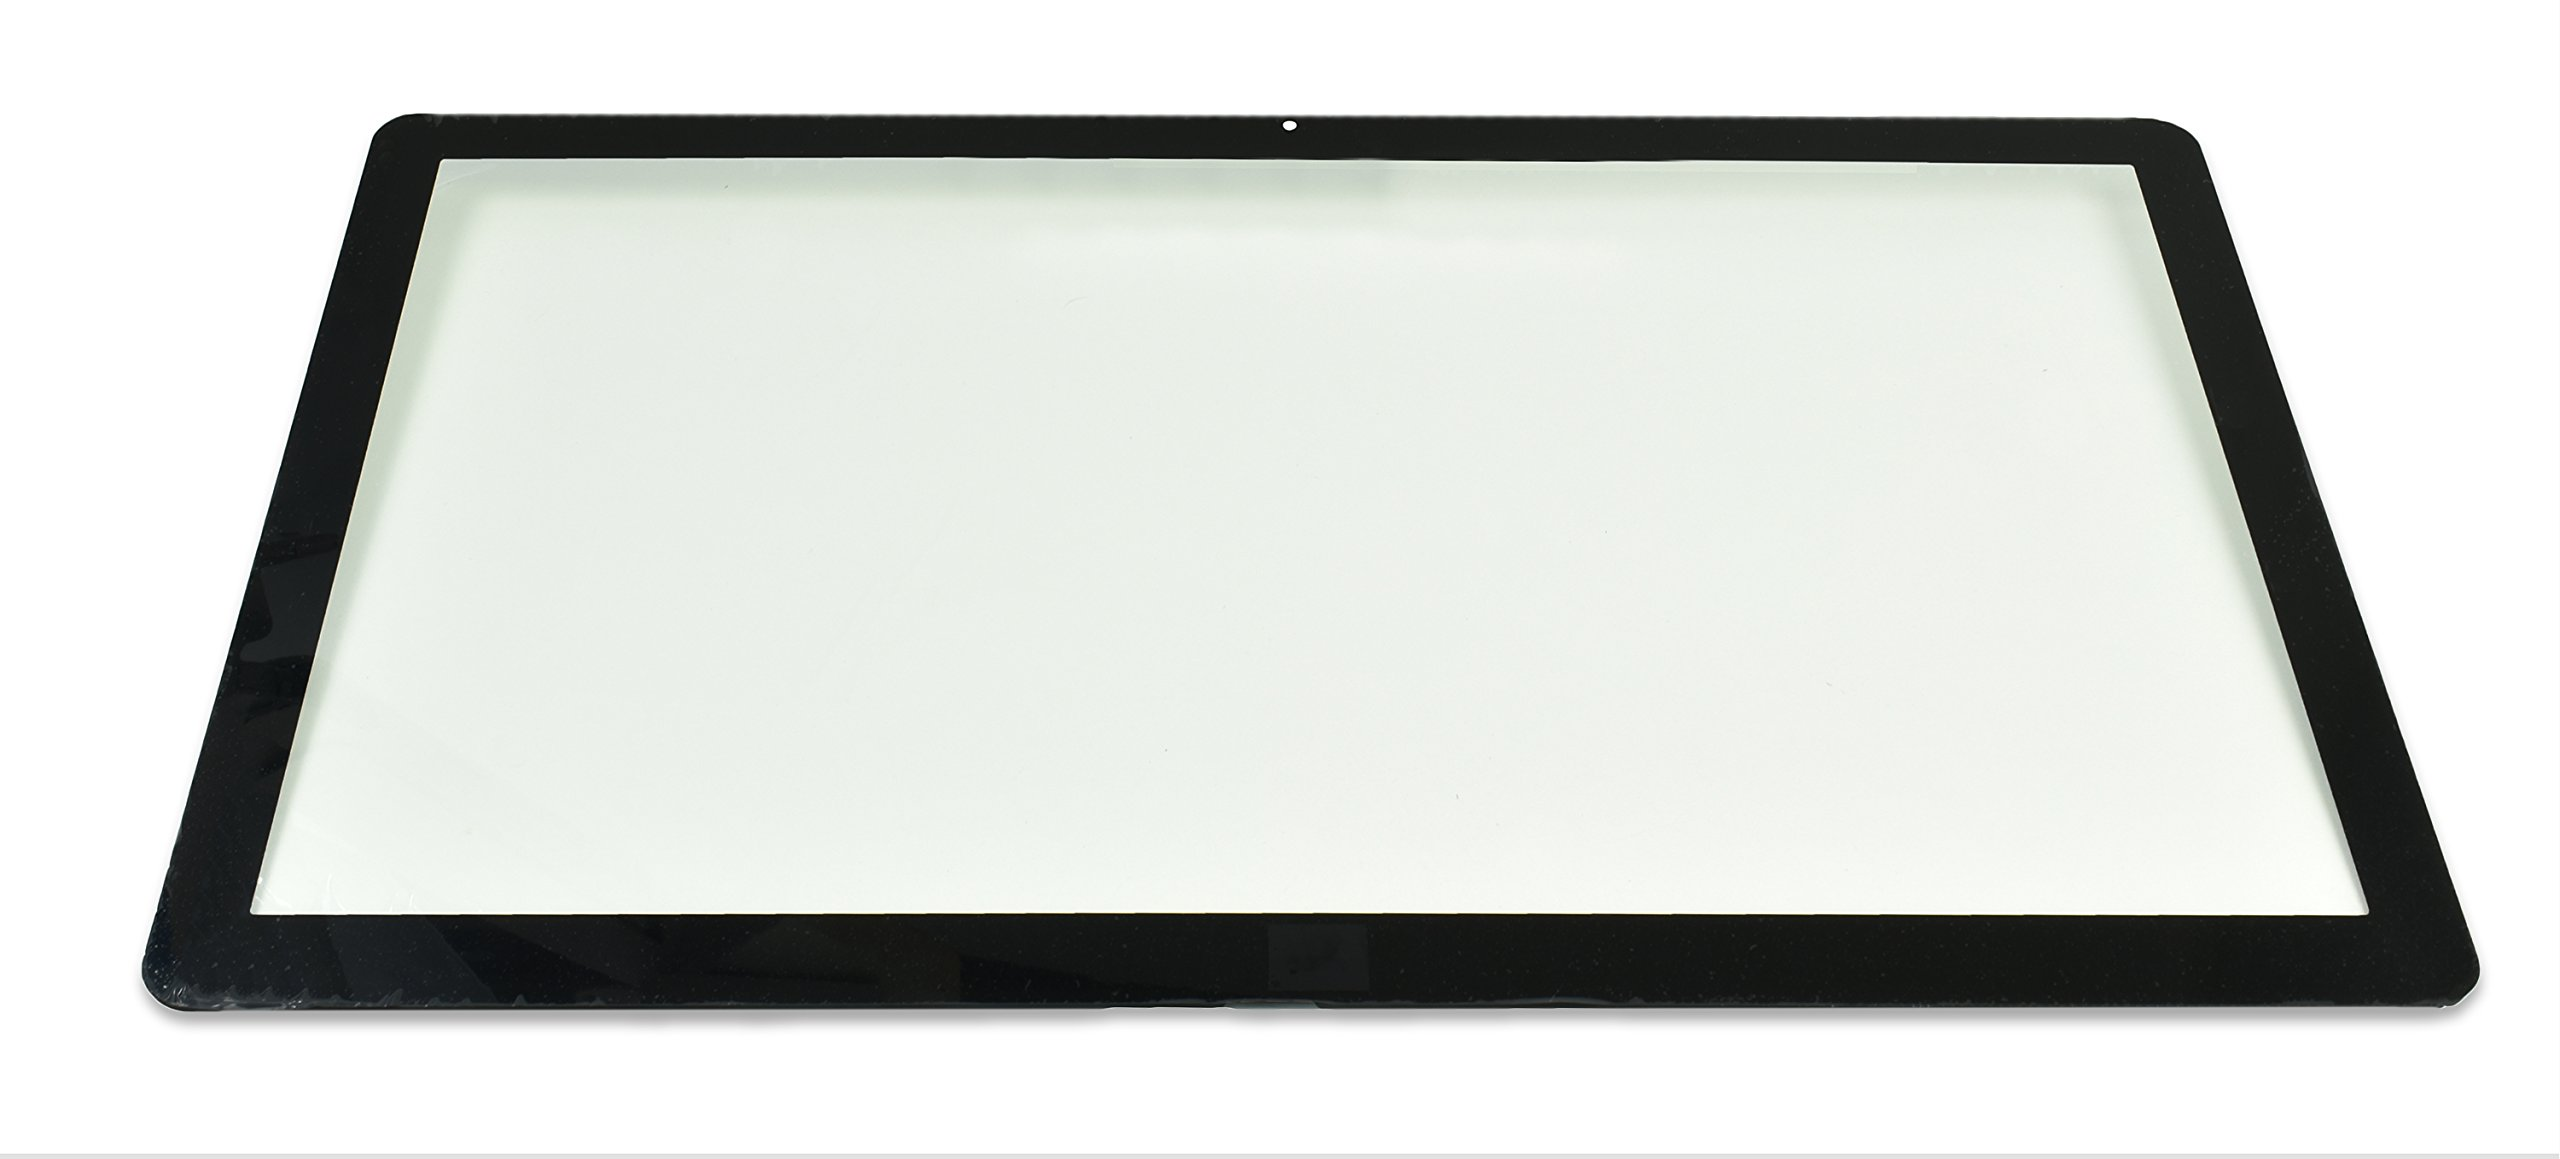 27'' Thunderbolt LCD Cinema Display Glass Cover for Apple iMac A1316 A1407 922-9344, 922-9919